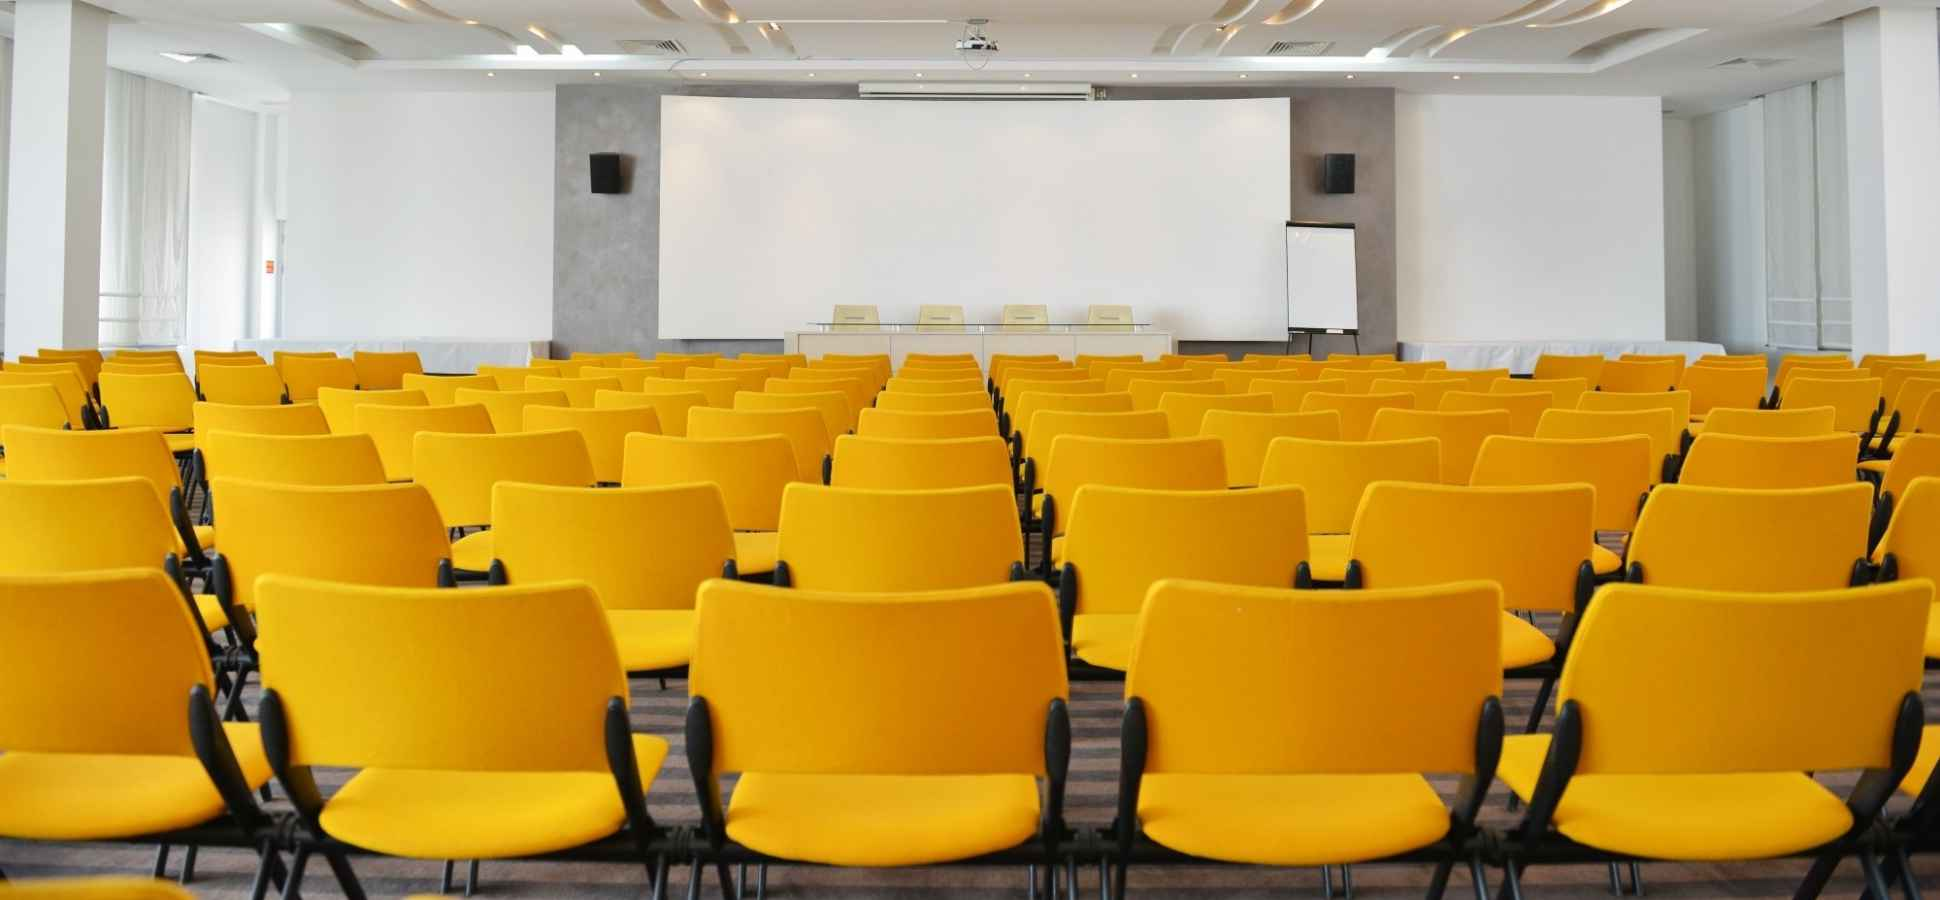 7 Ways to Get the Most From an Industry Conference